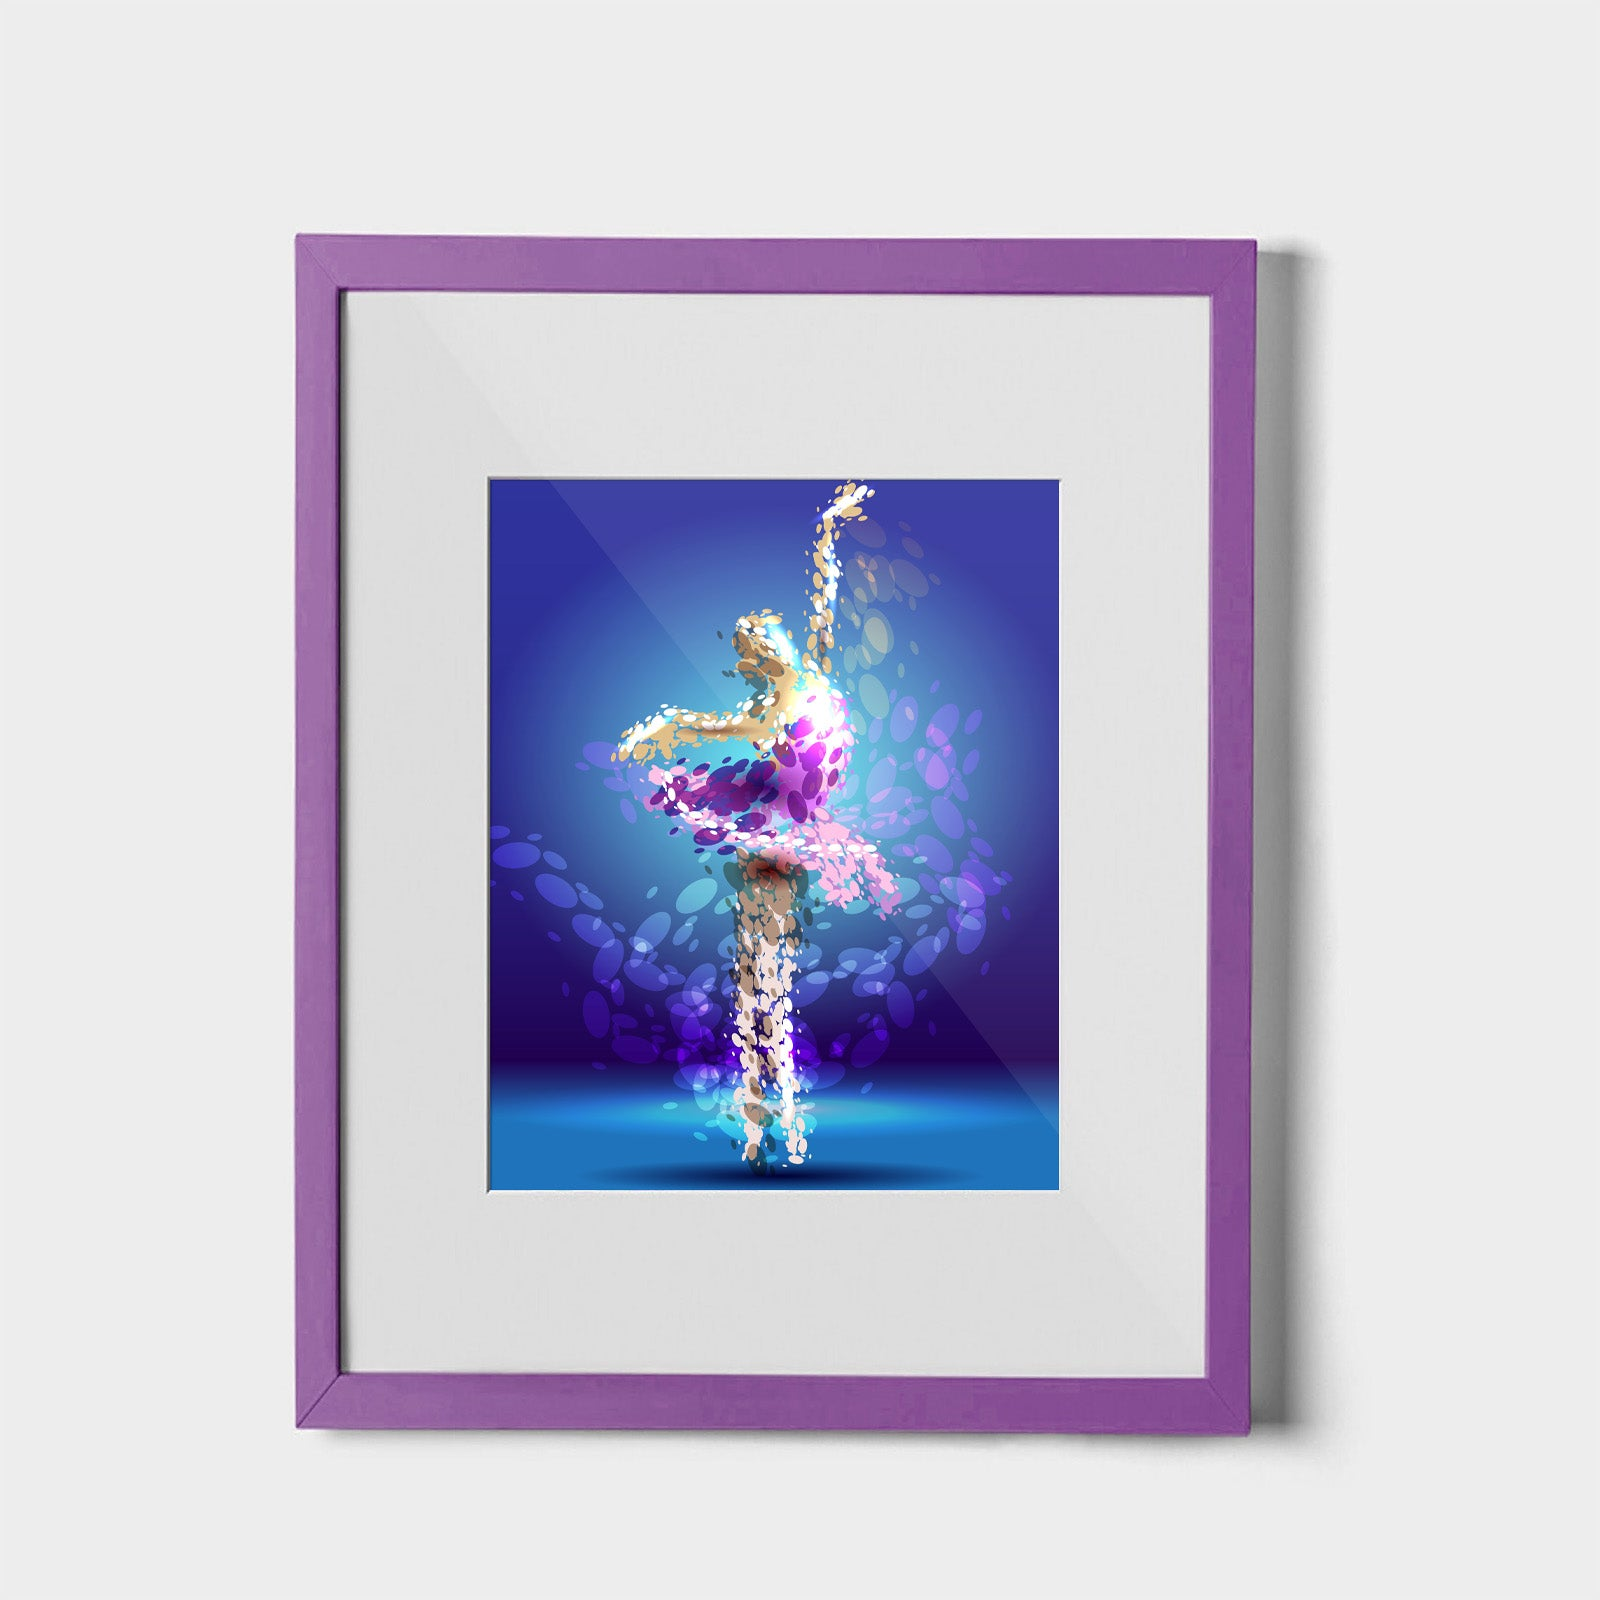 Tiny Dancer - W (Art Prints) Print Standard ARtscapes-AR - ARtscapes